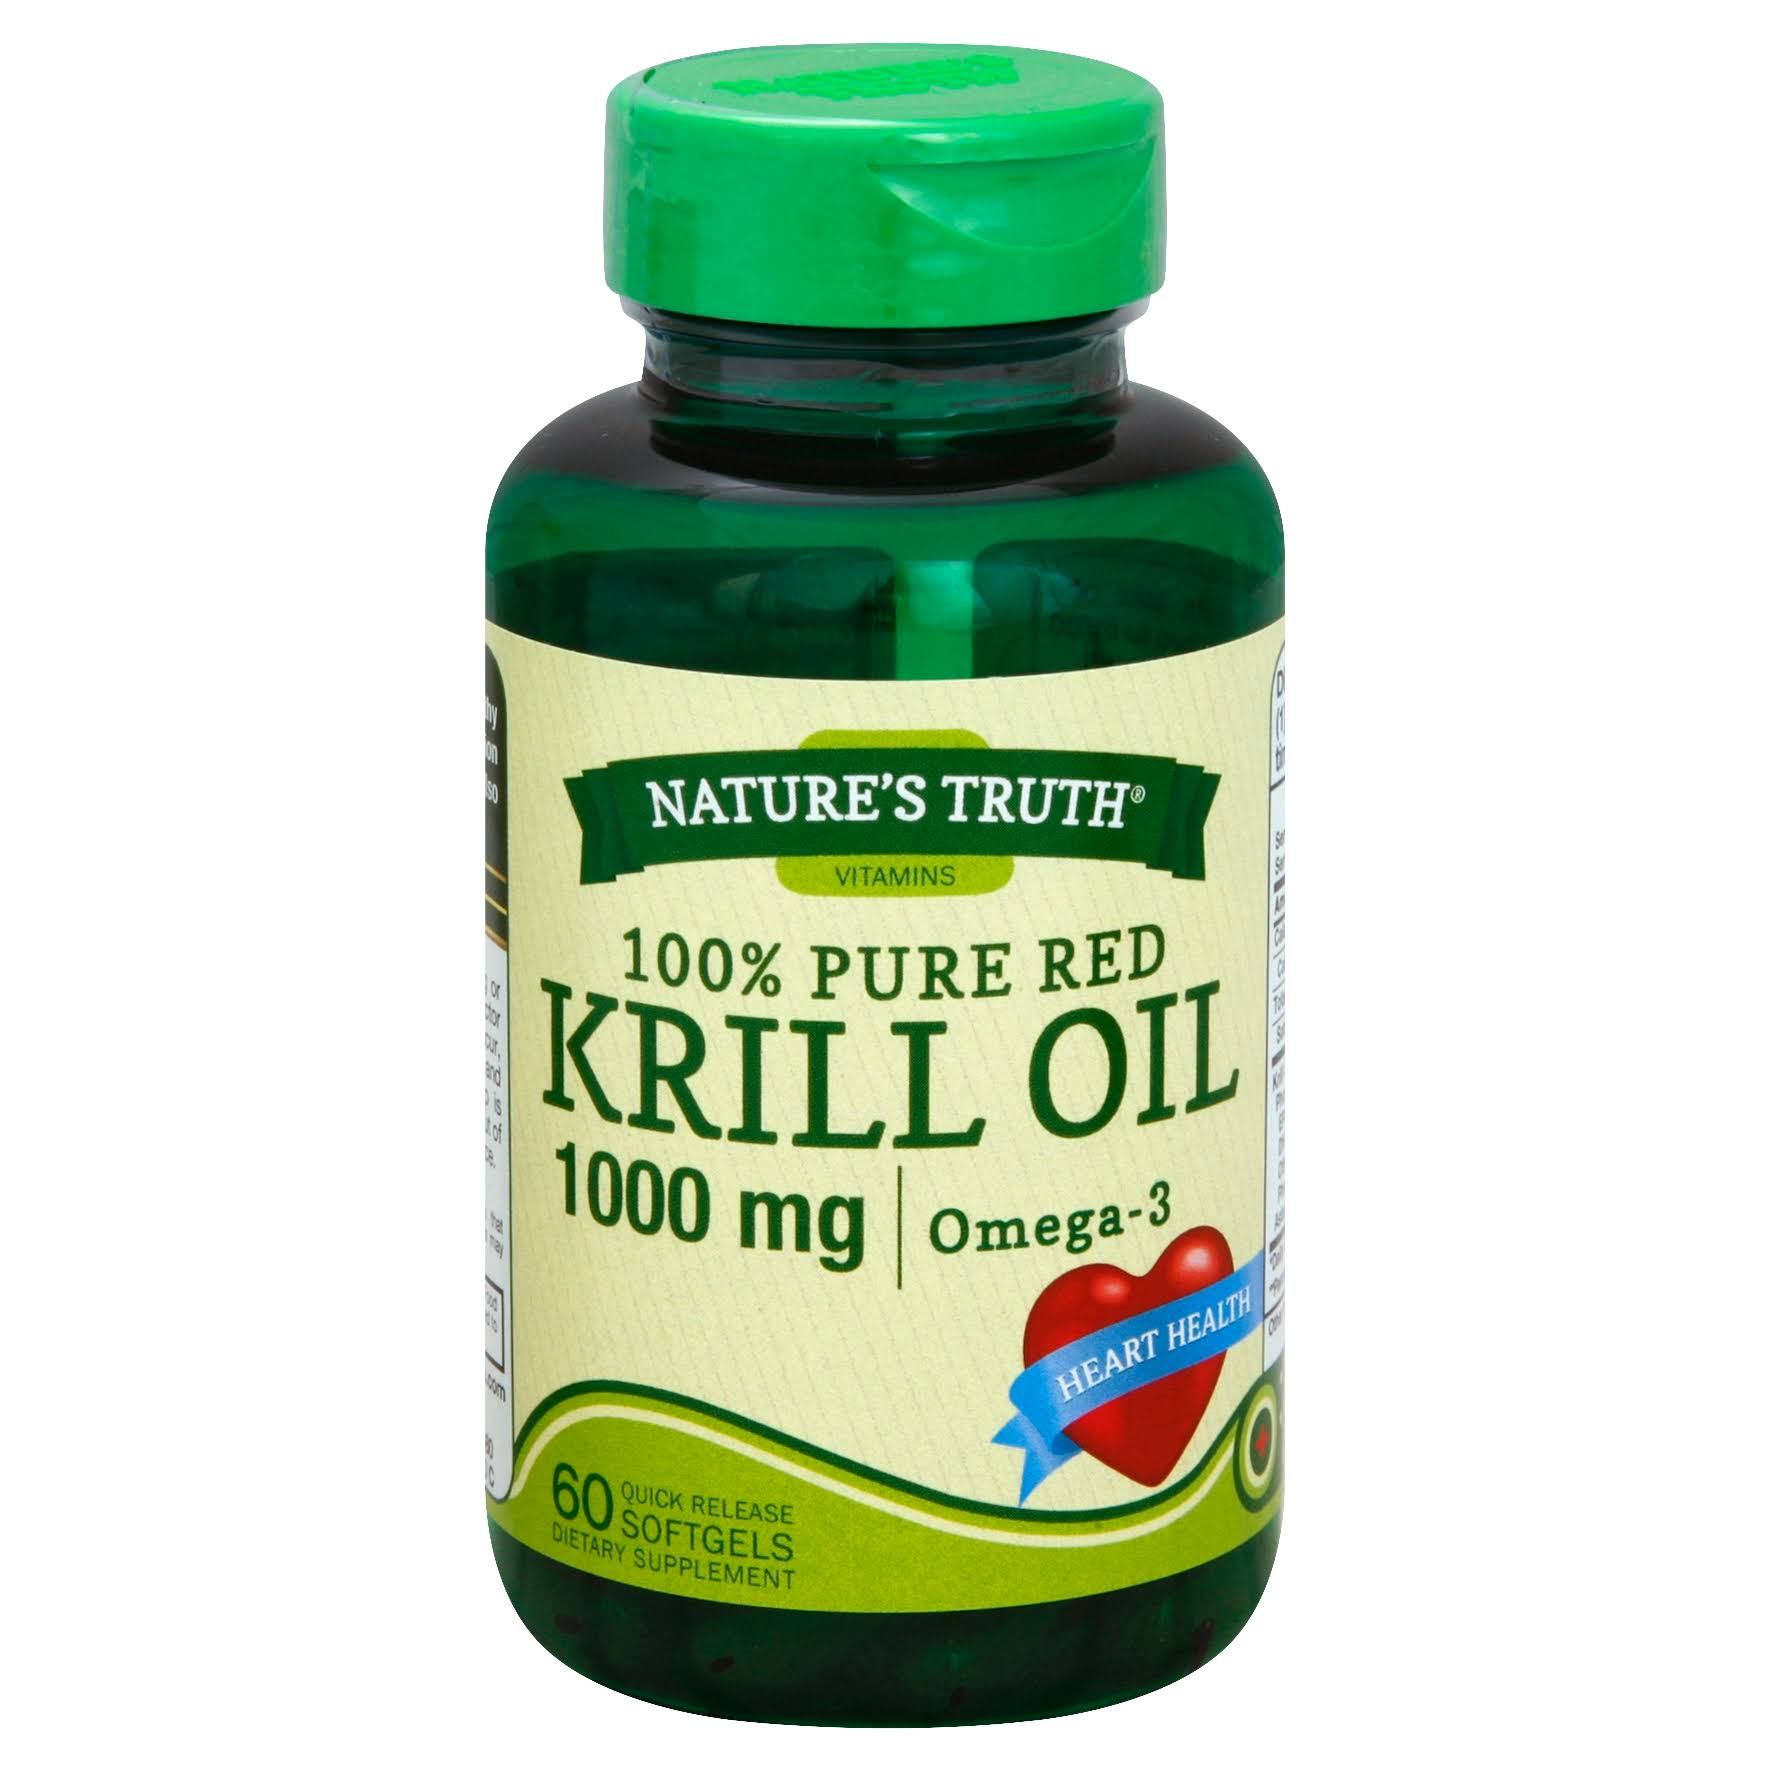 Natures Truth 100% Pure Red Krill Oil Dietary Supplement - 1000mg, 60 Quick-Release Softgels